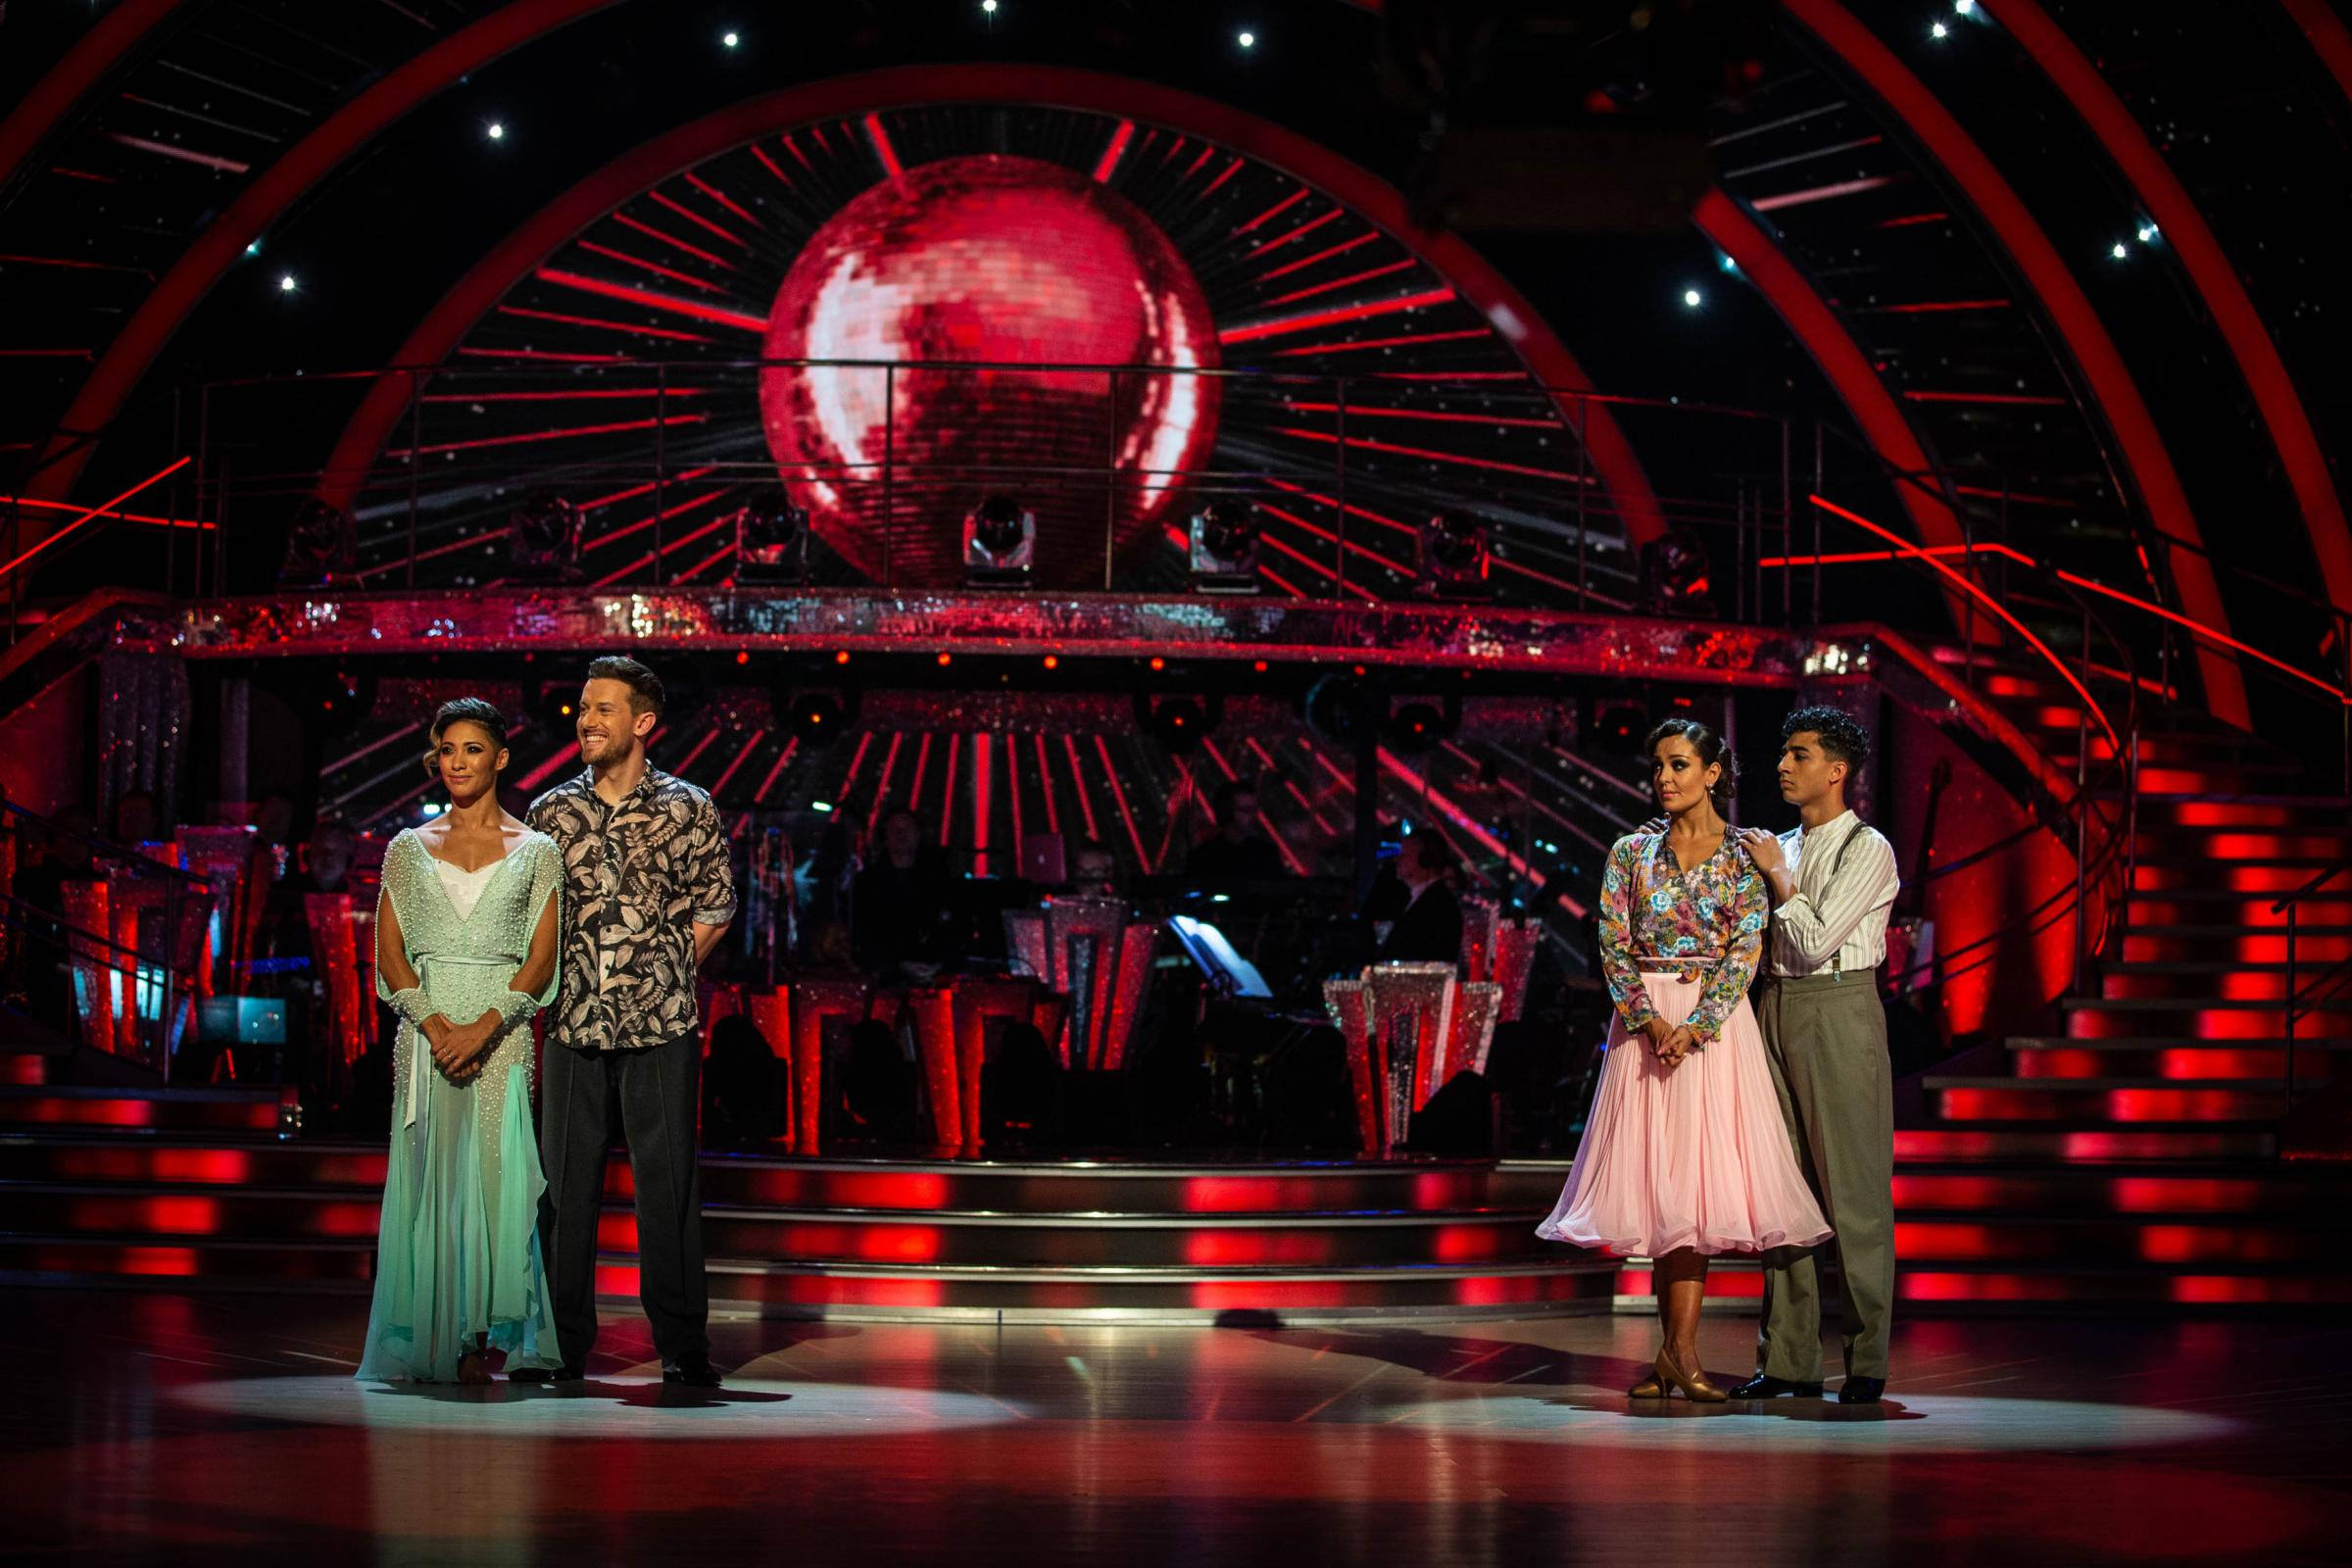 STRICTLY COME DANCING FINALISTS REVEALED AFTER DANCE-OFF ELIMINATION